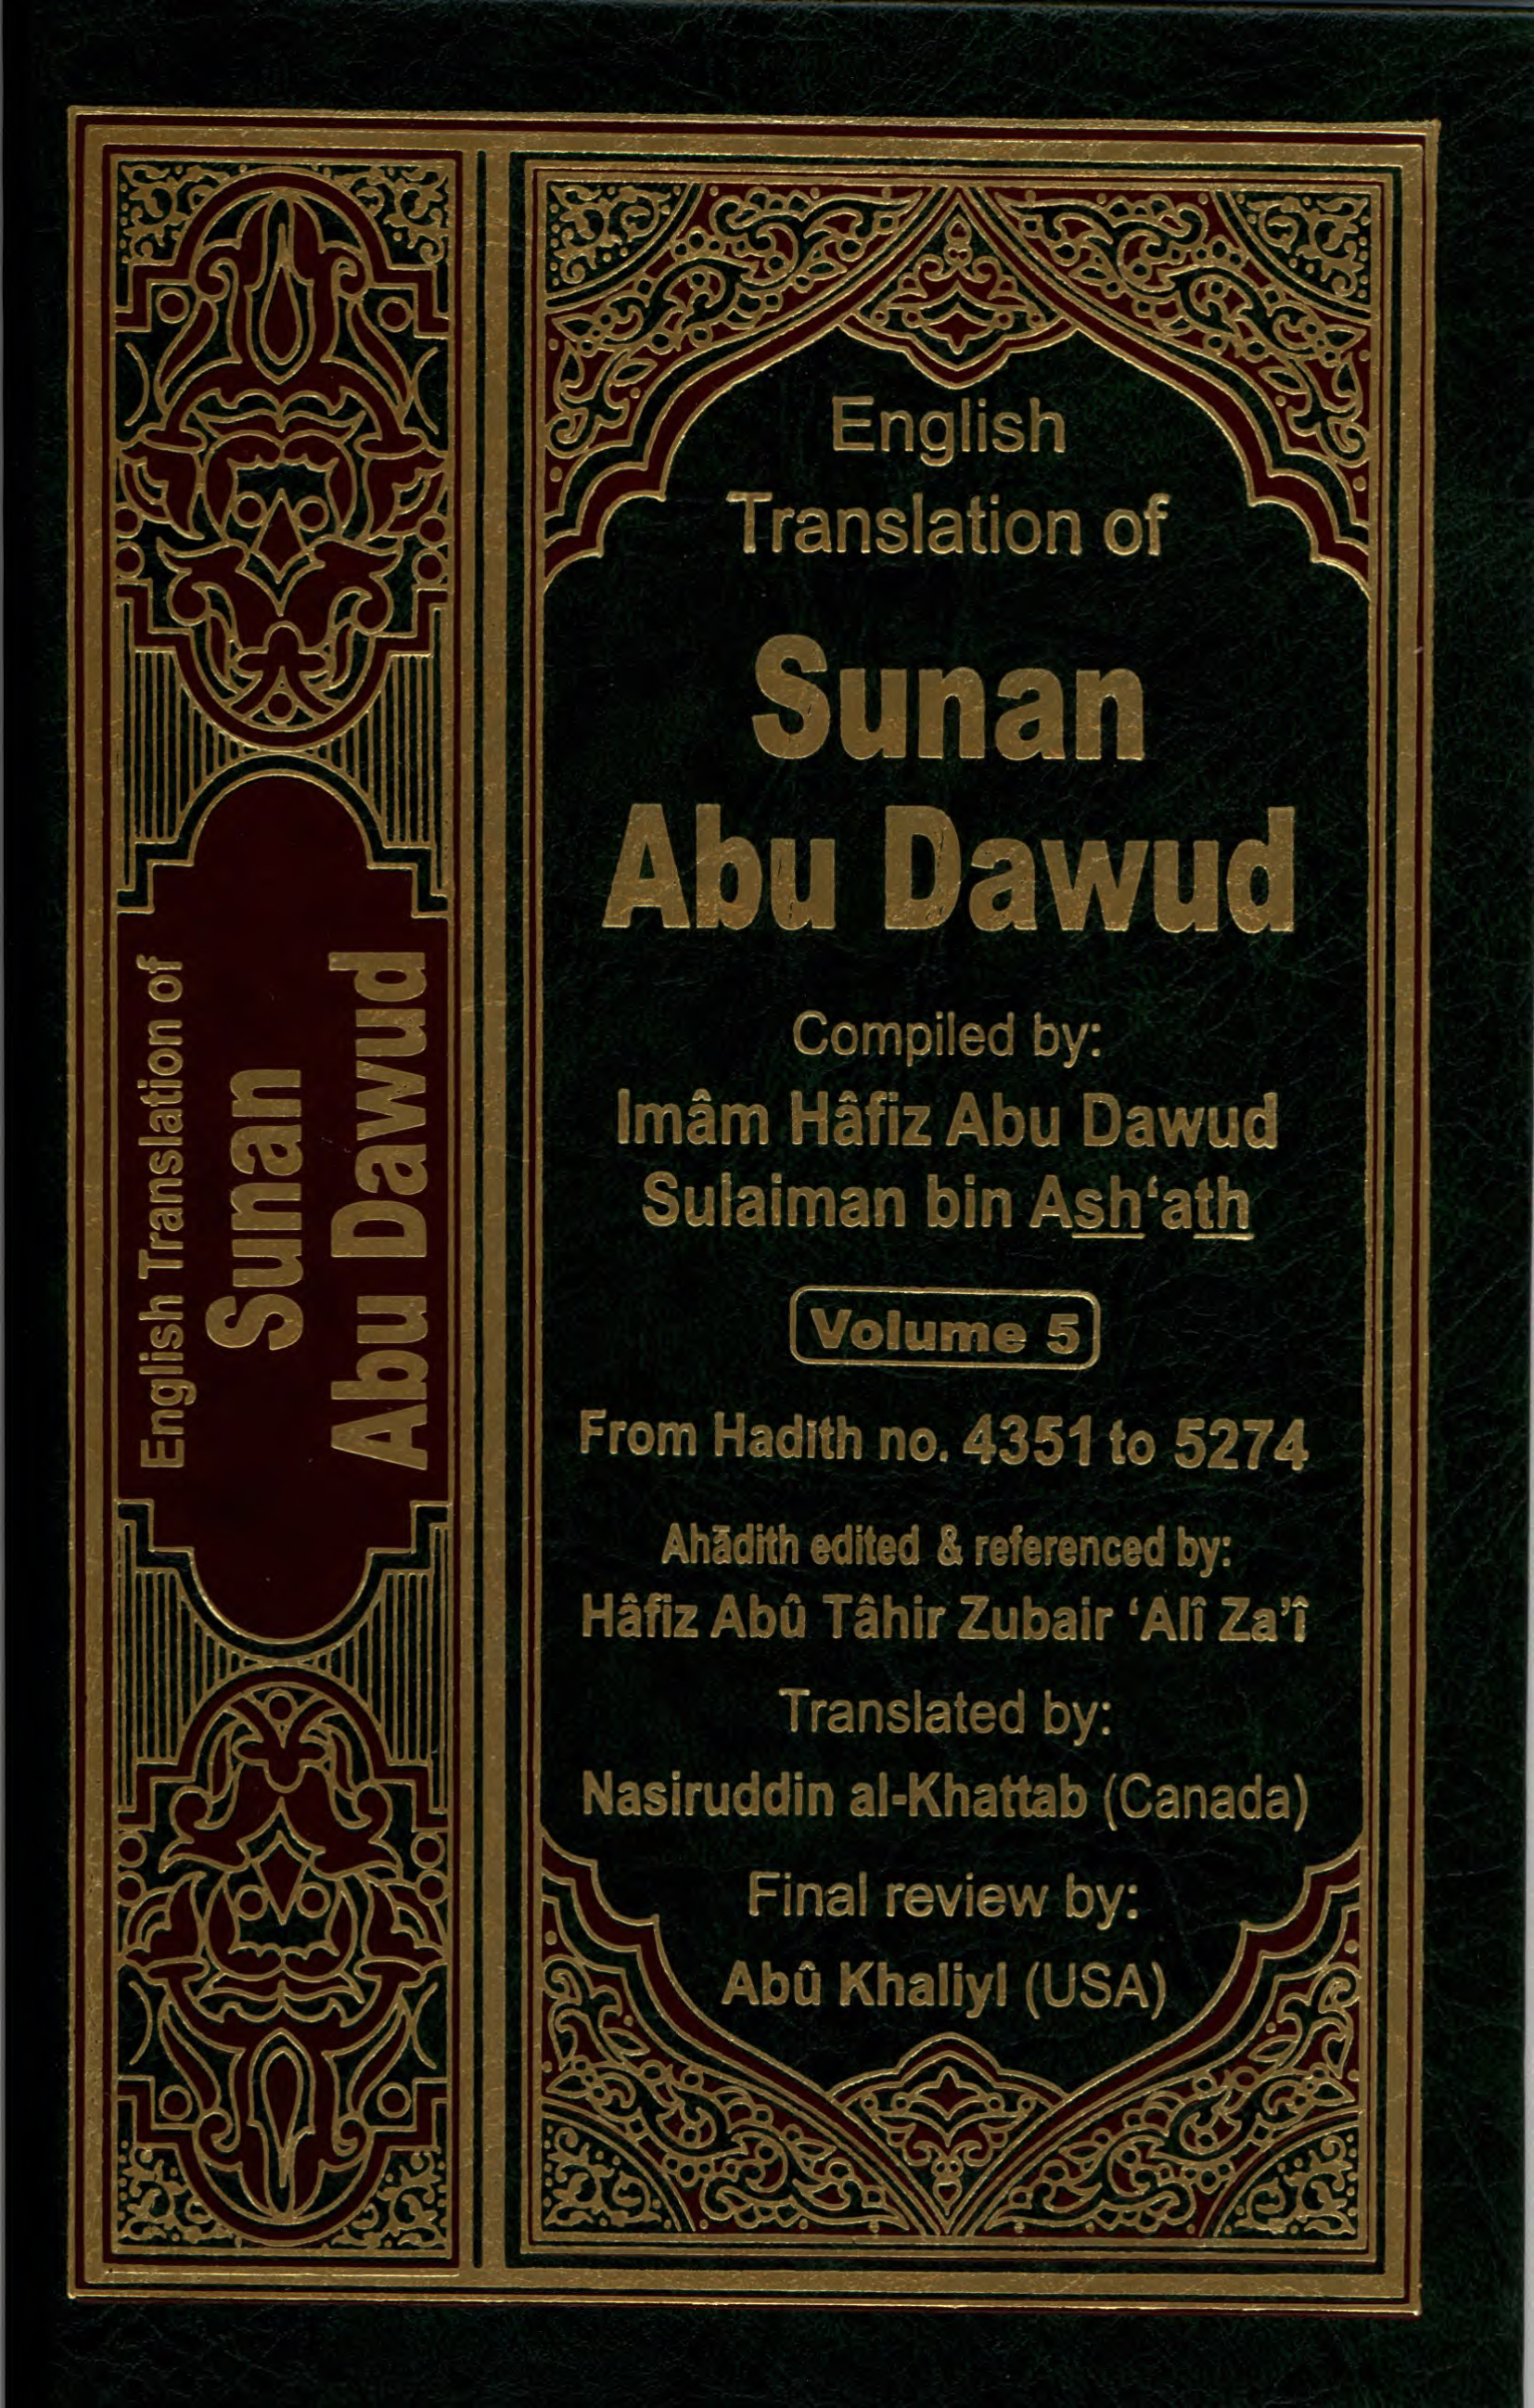 English Translation of Sunan Abu Dawud (Volume 5)